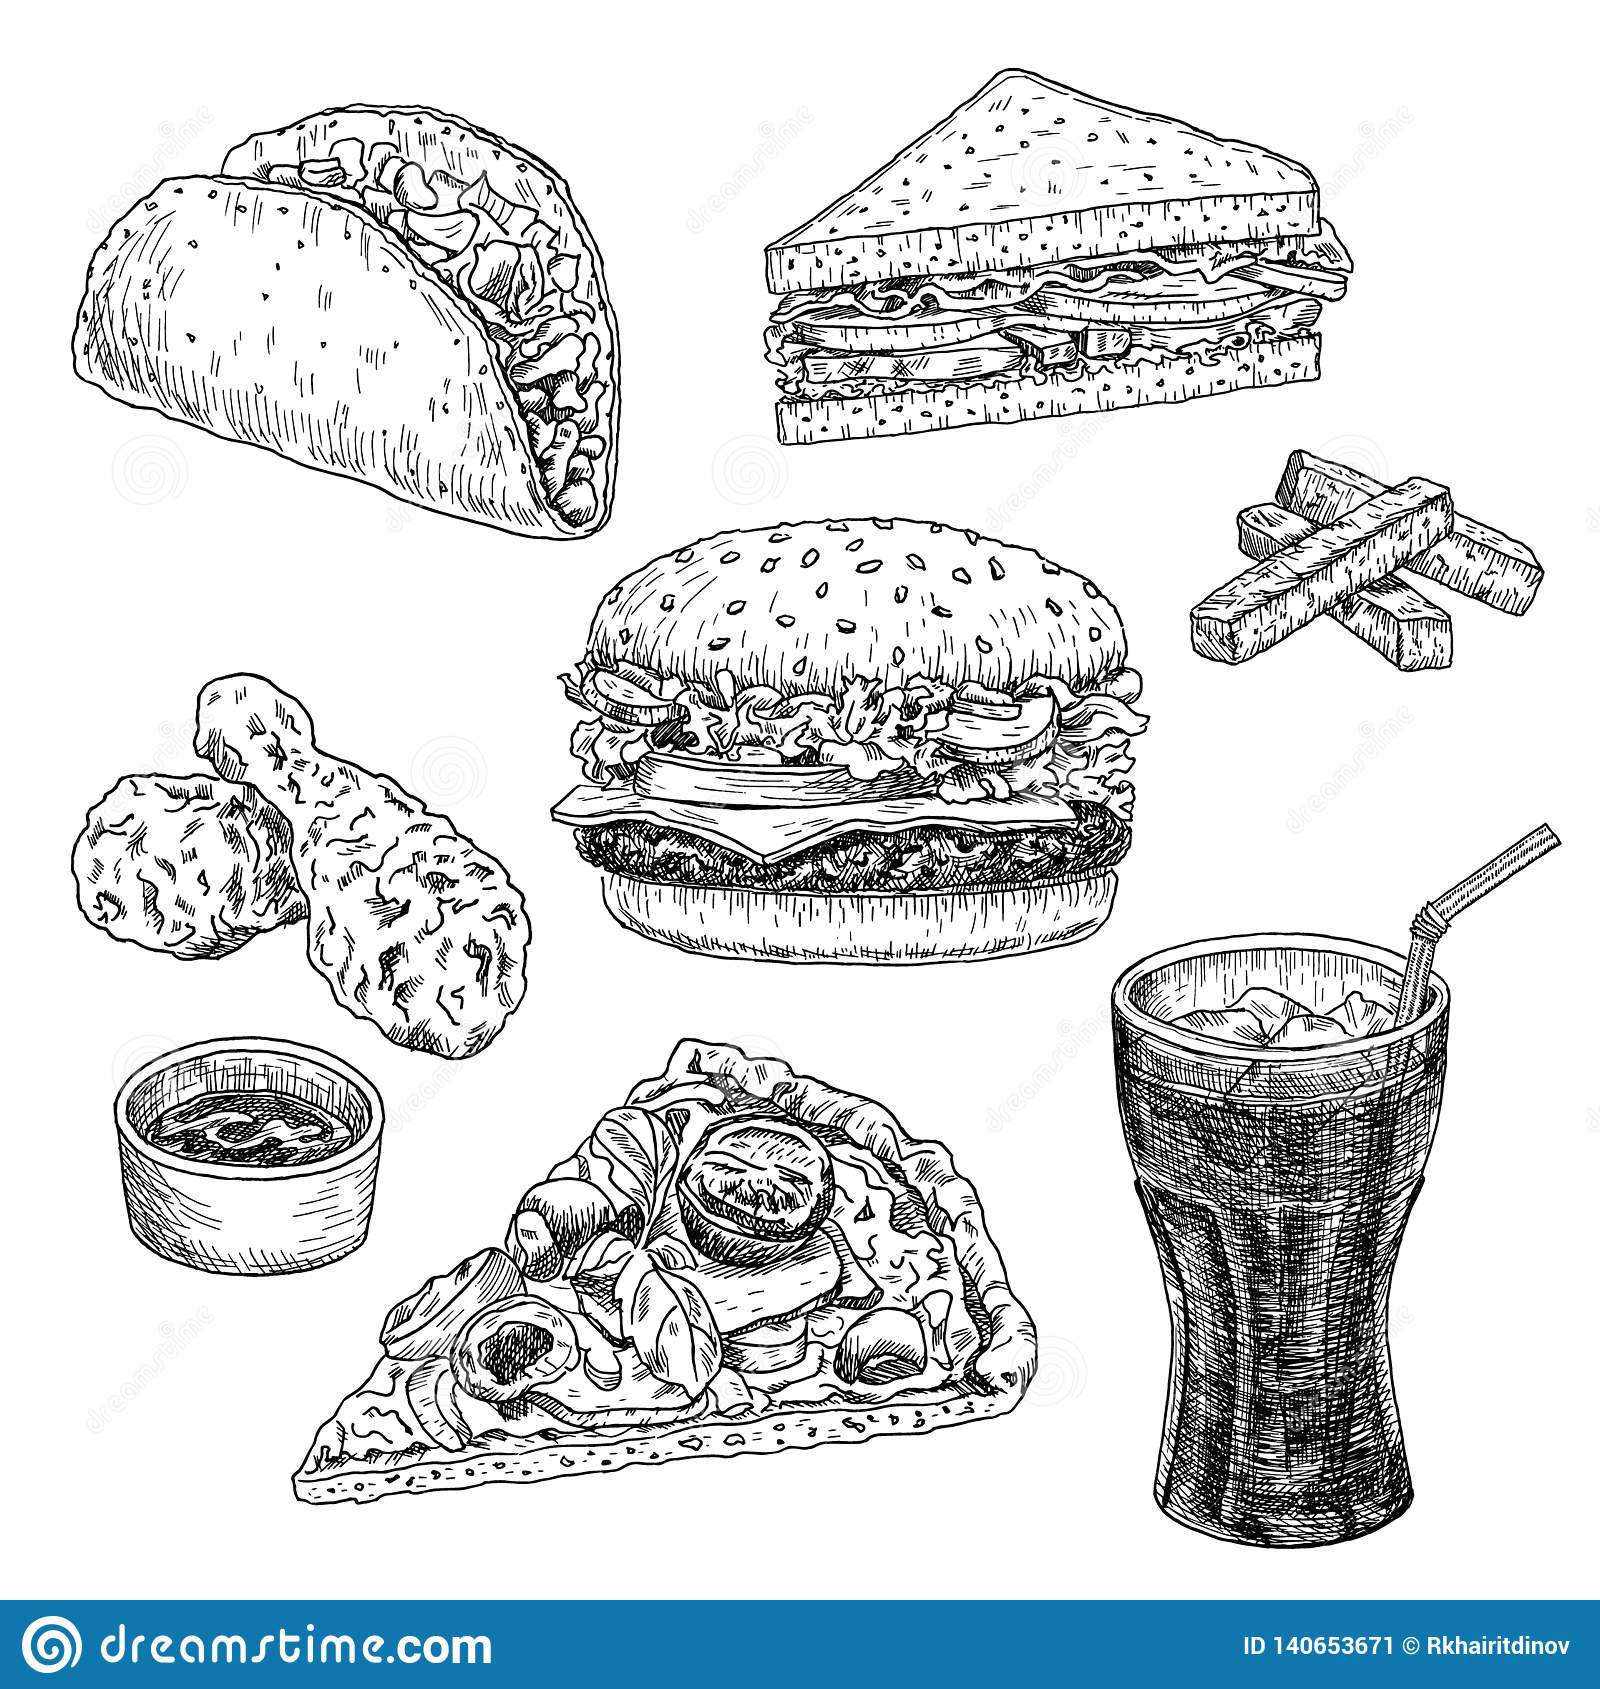 Fast food hand drawn vector illustration. Hamburger, cheeseburger, sandwich, pizza, chicken, taco and cola, engraved style, sketch